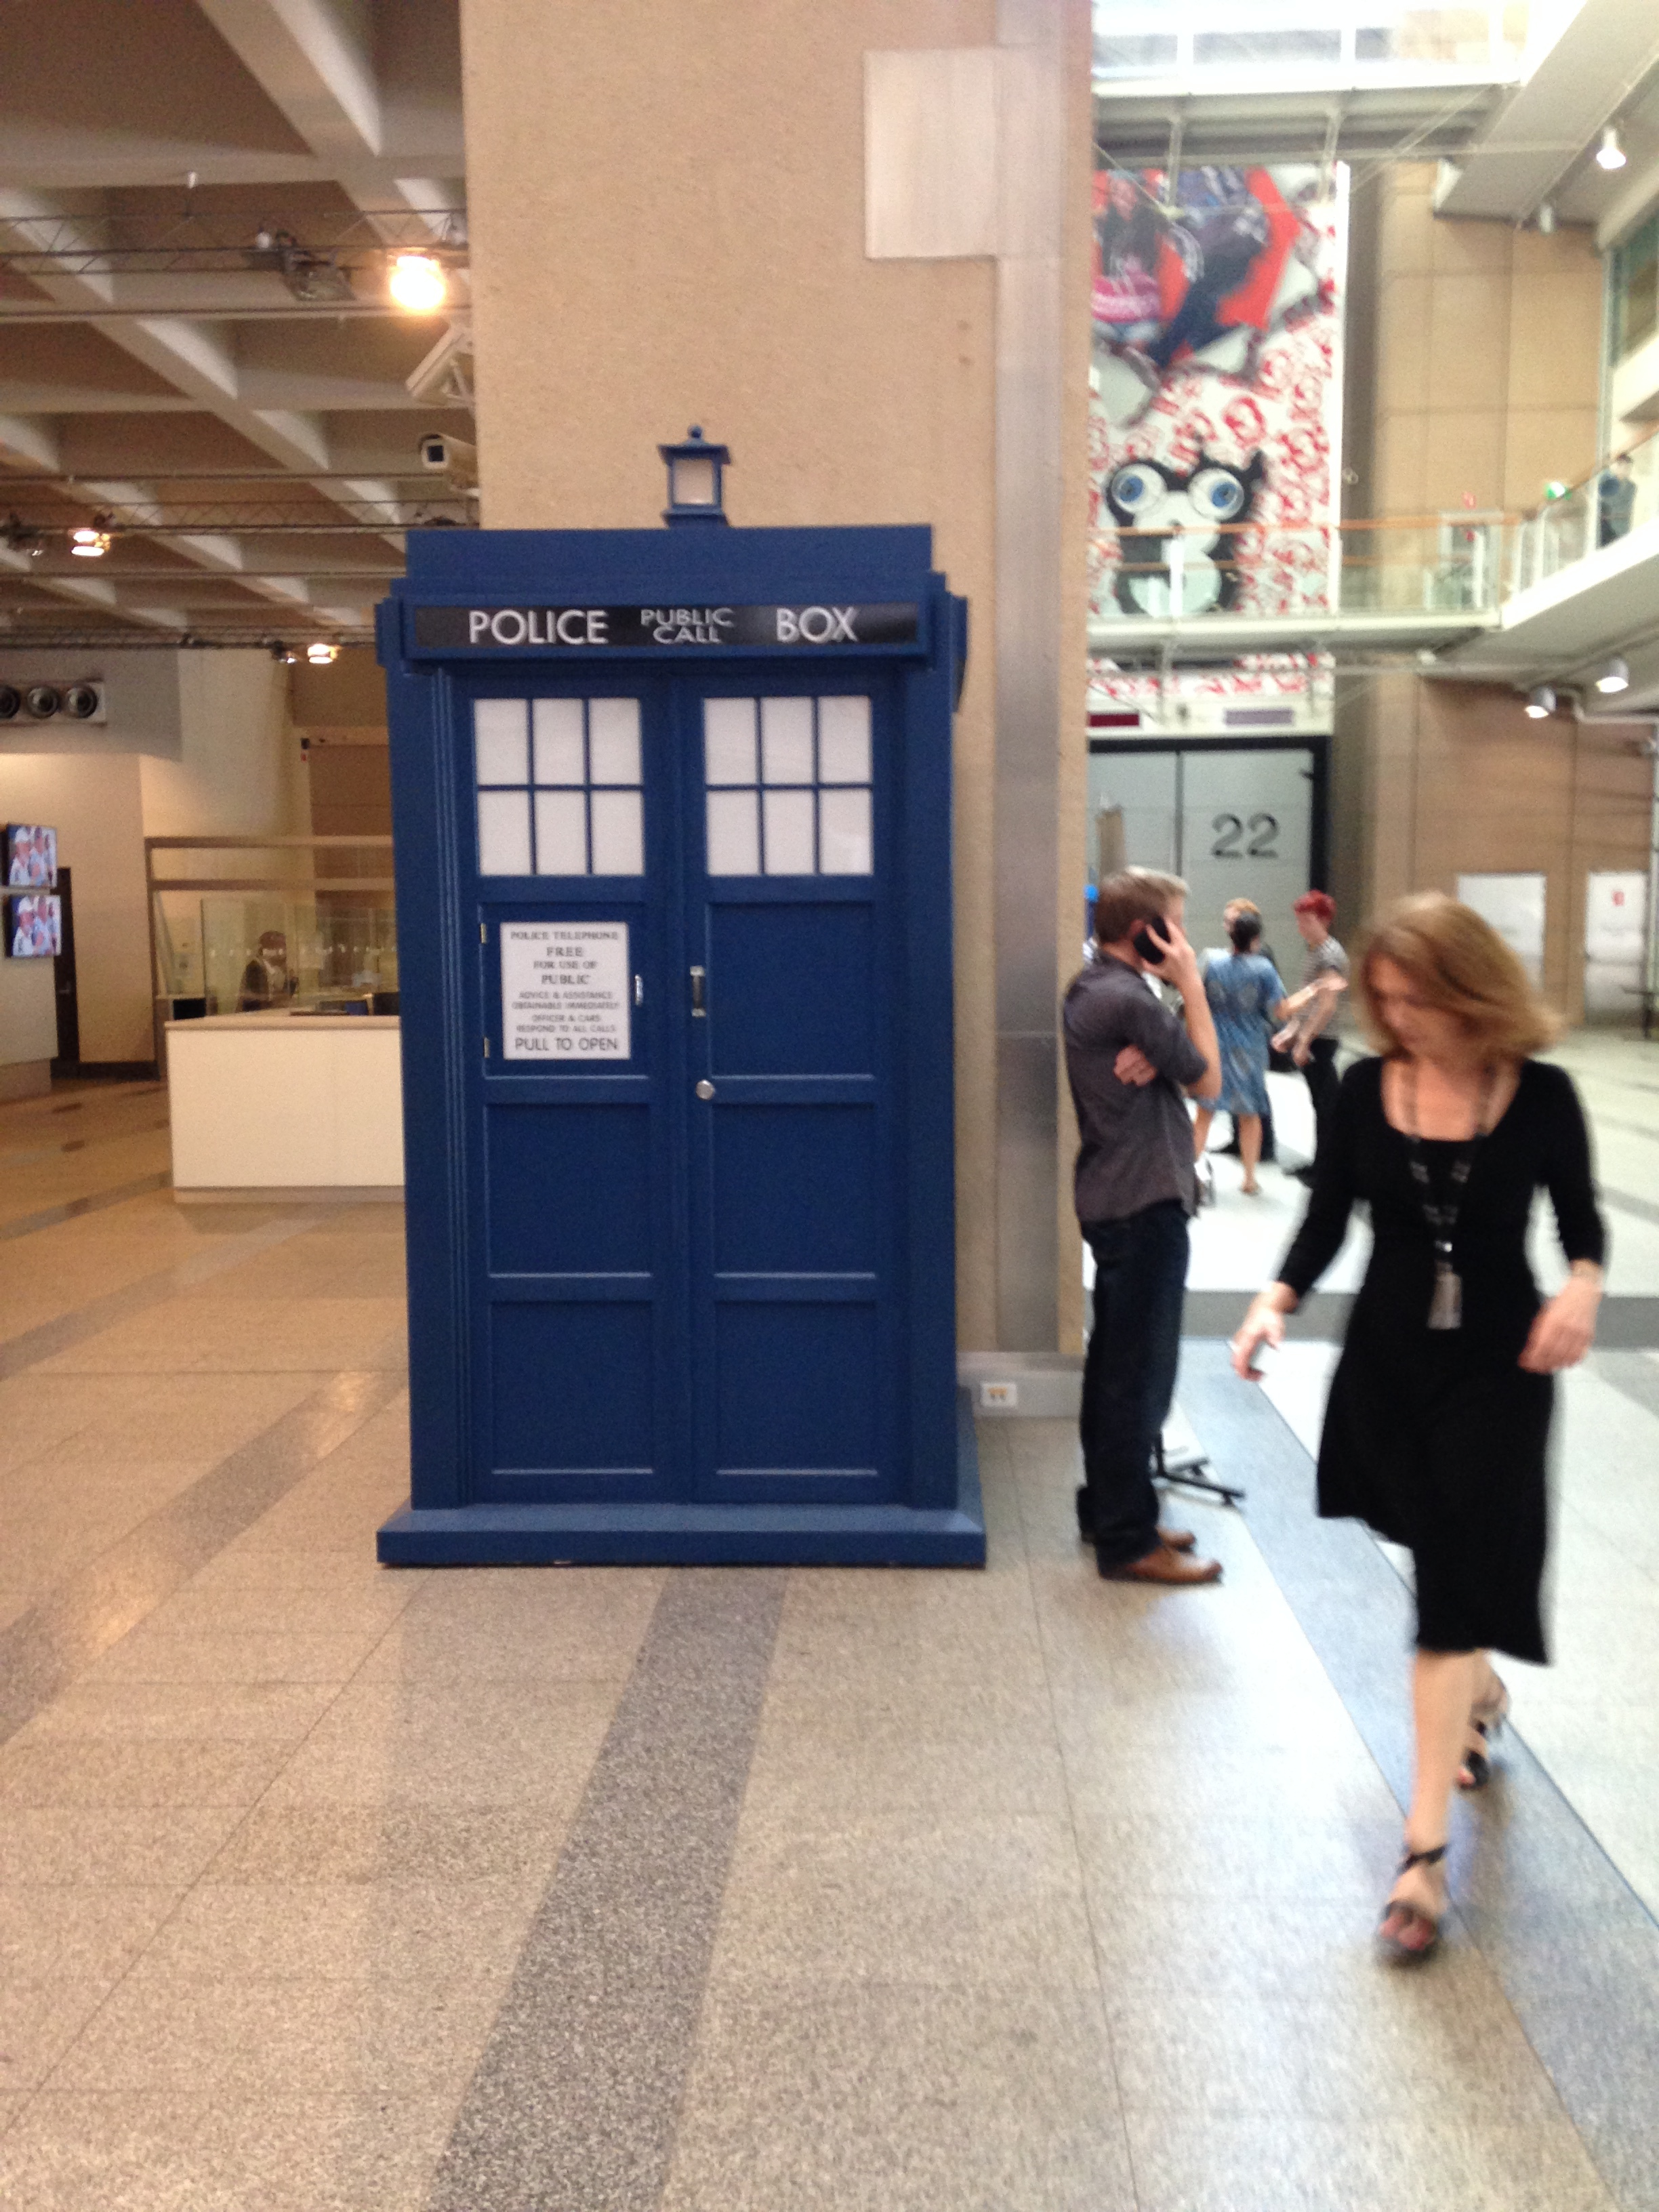 No, not in this Tardis - seen in ABC lobby and photographed to impress my 10 y.o. daughter 'Dr Who' fan.